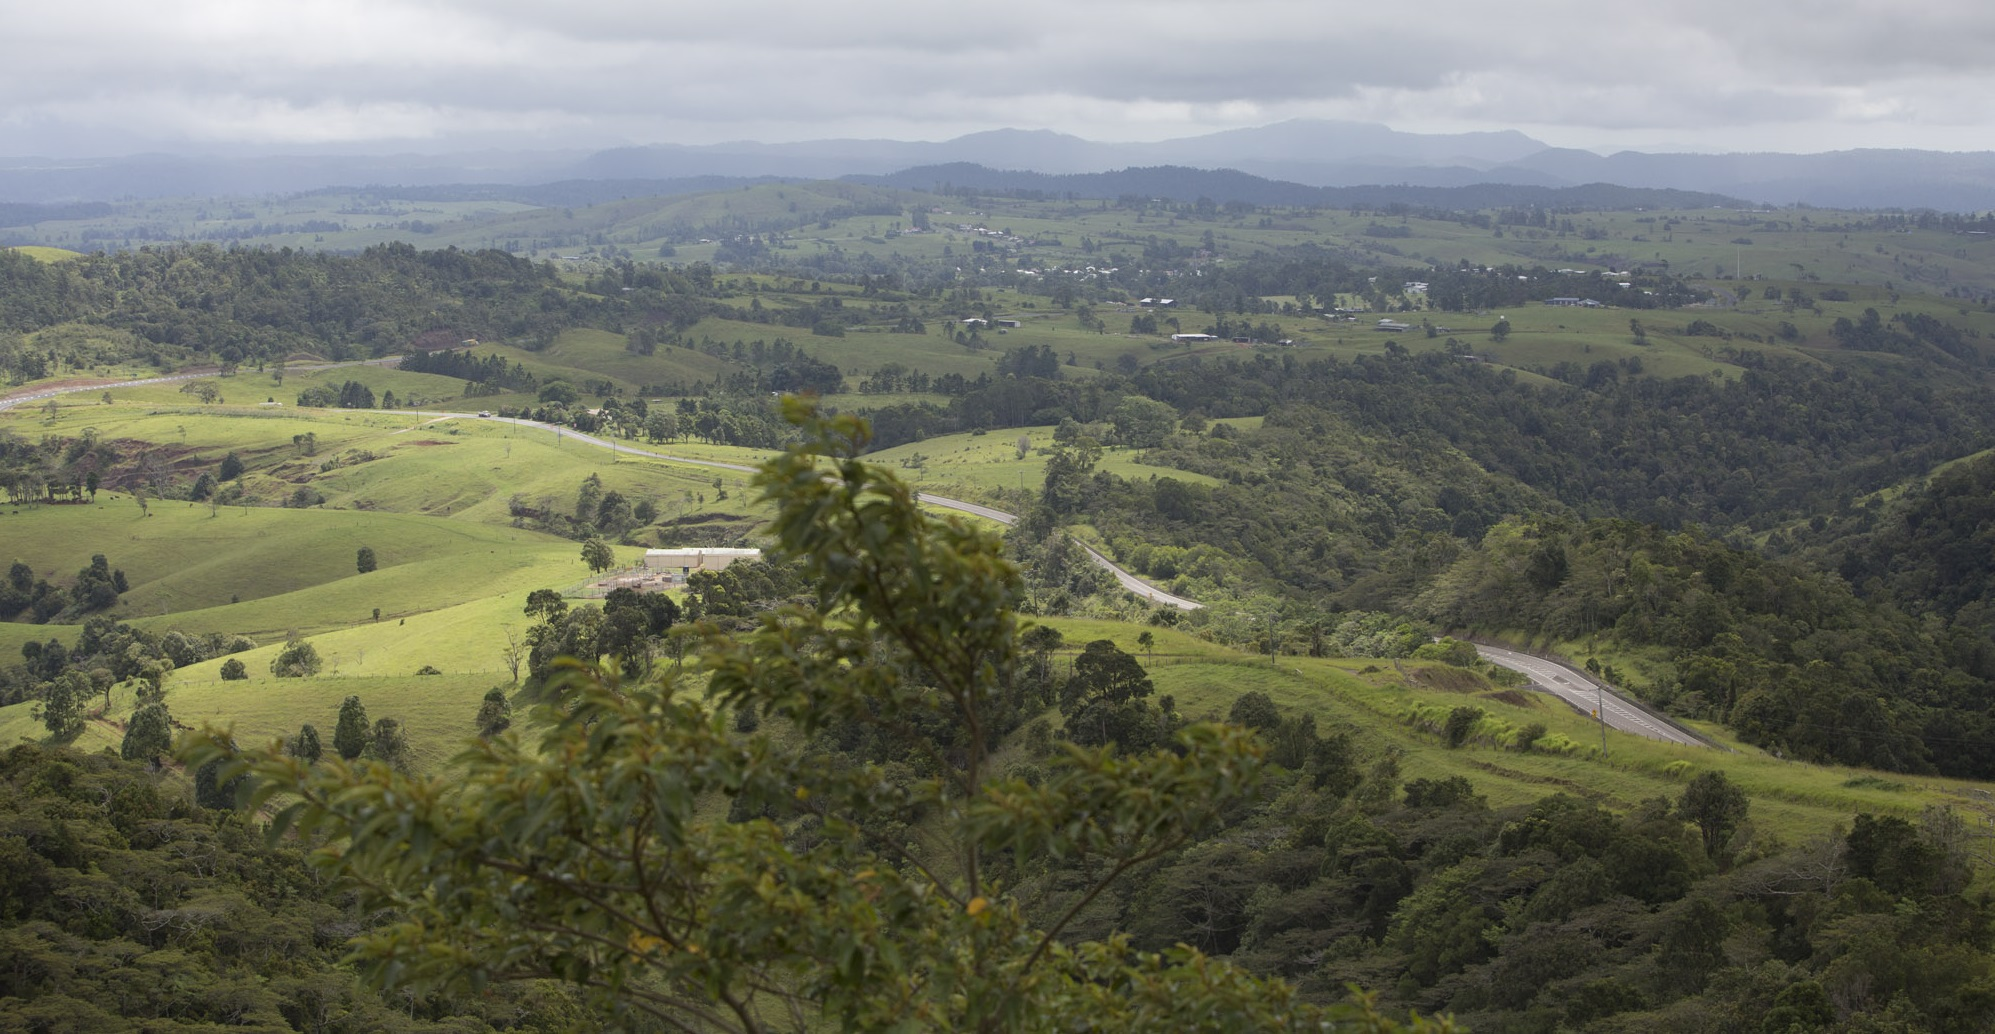 Getting to the atherton tablelands tropical north queensland for The atherton